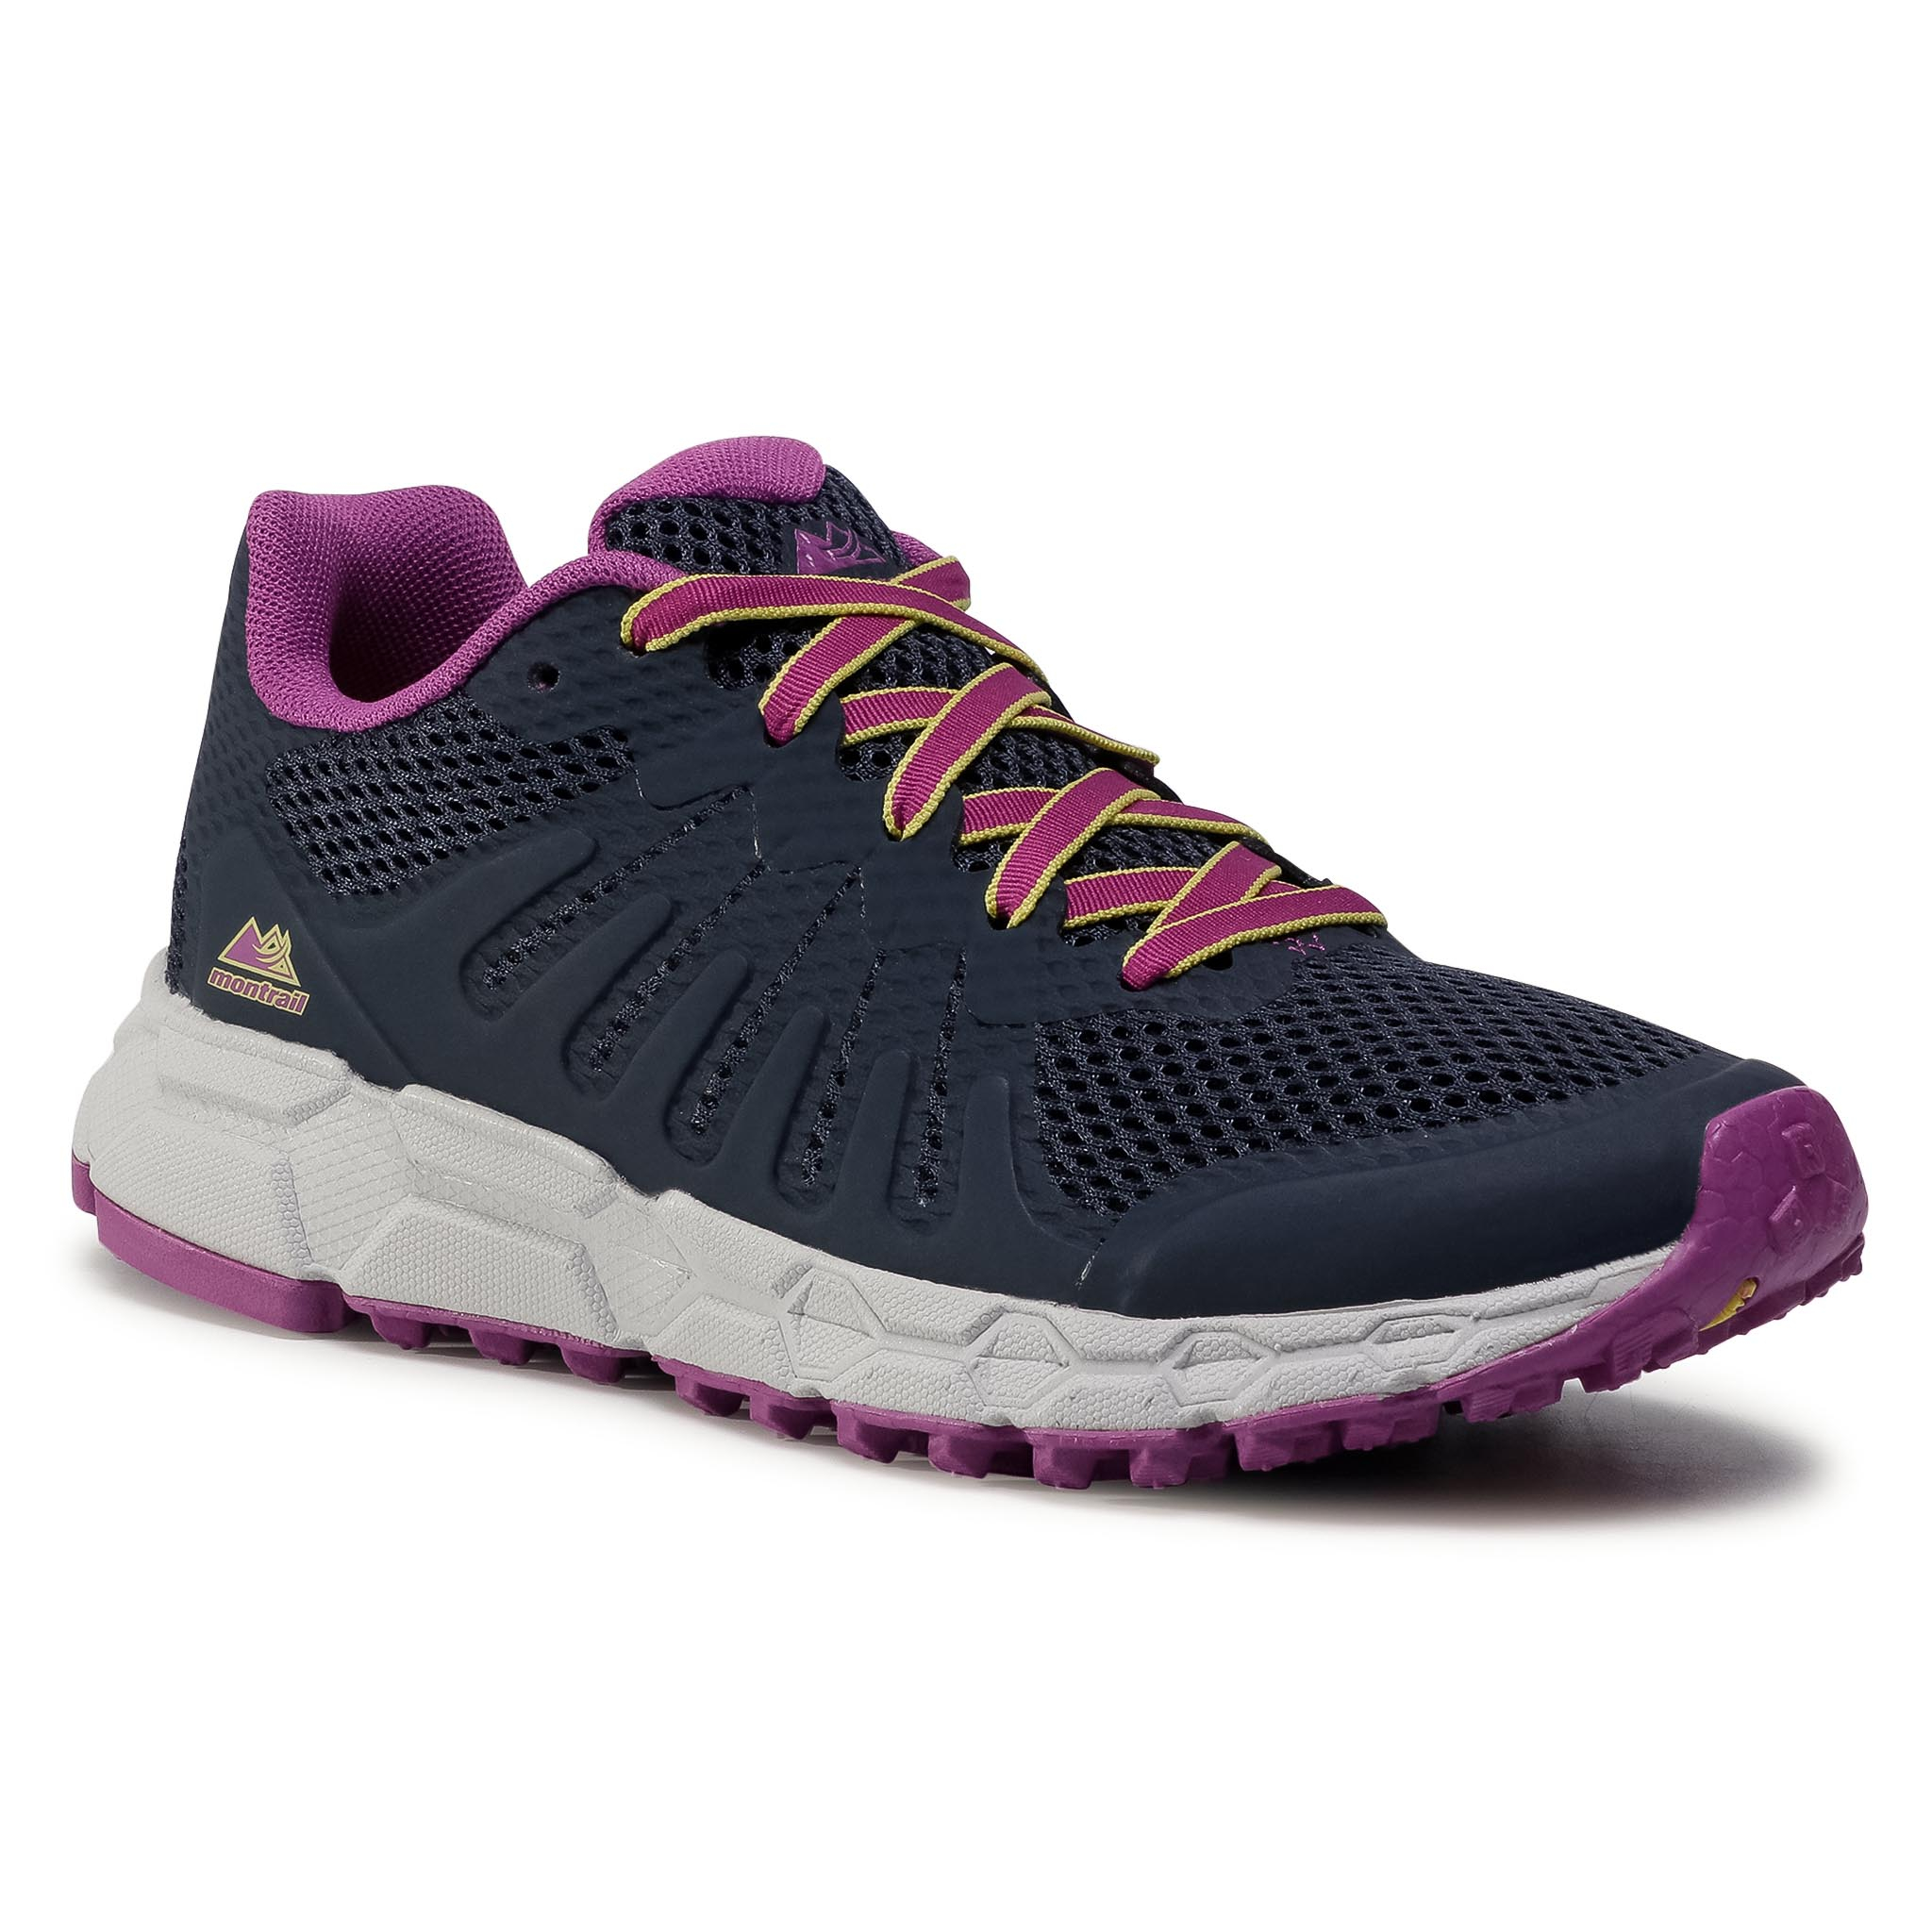 Batai COLUMBIA - Montrail F.K.T. Attempt BL0110 Abyss/Berry Jam 439